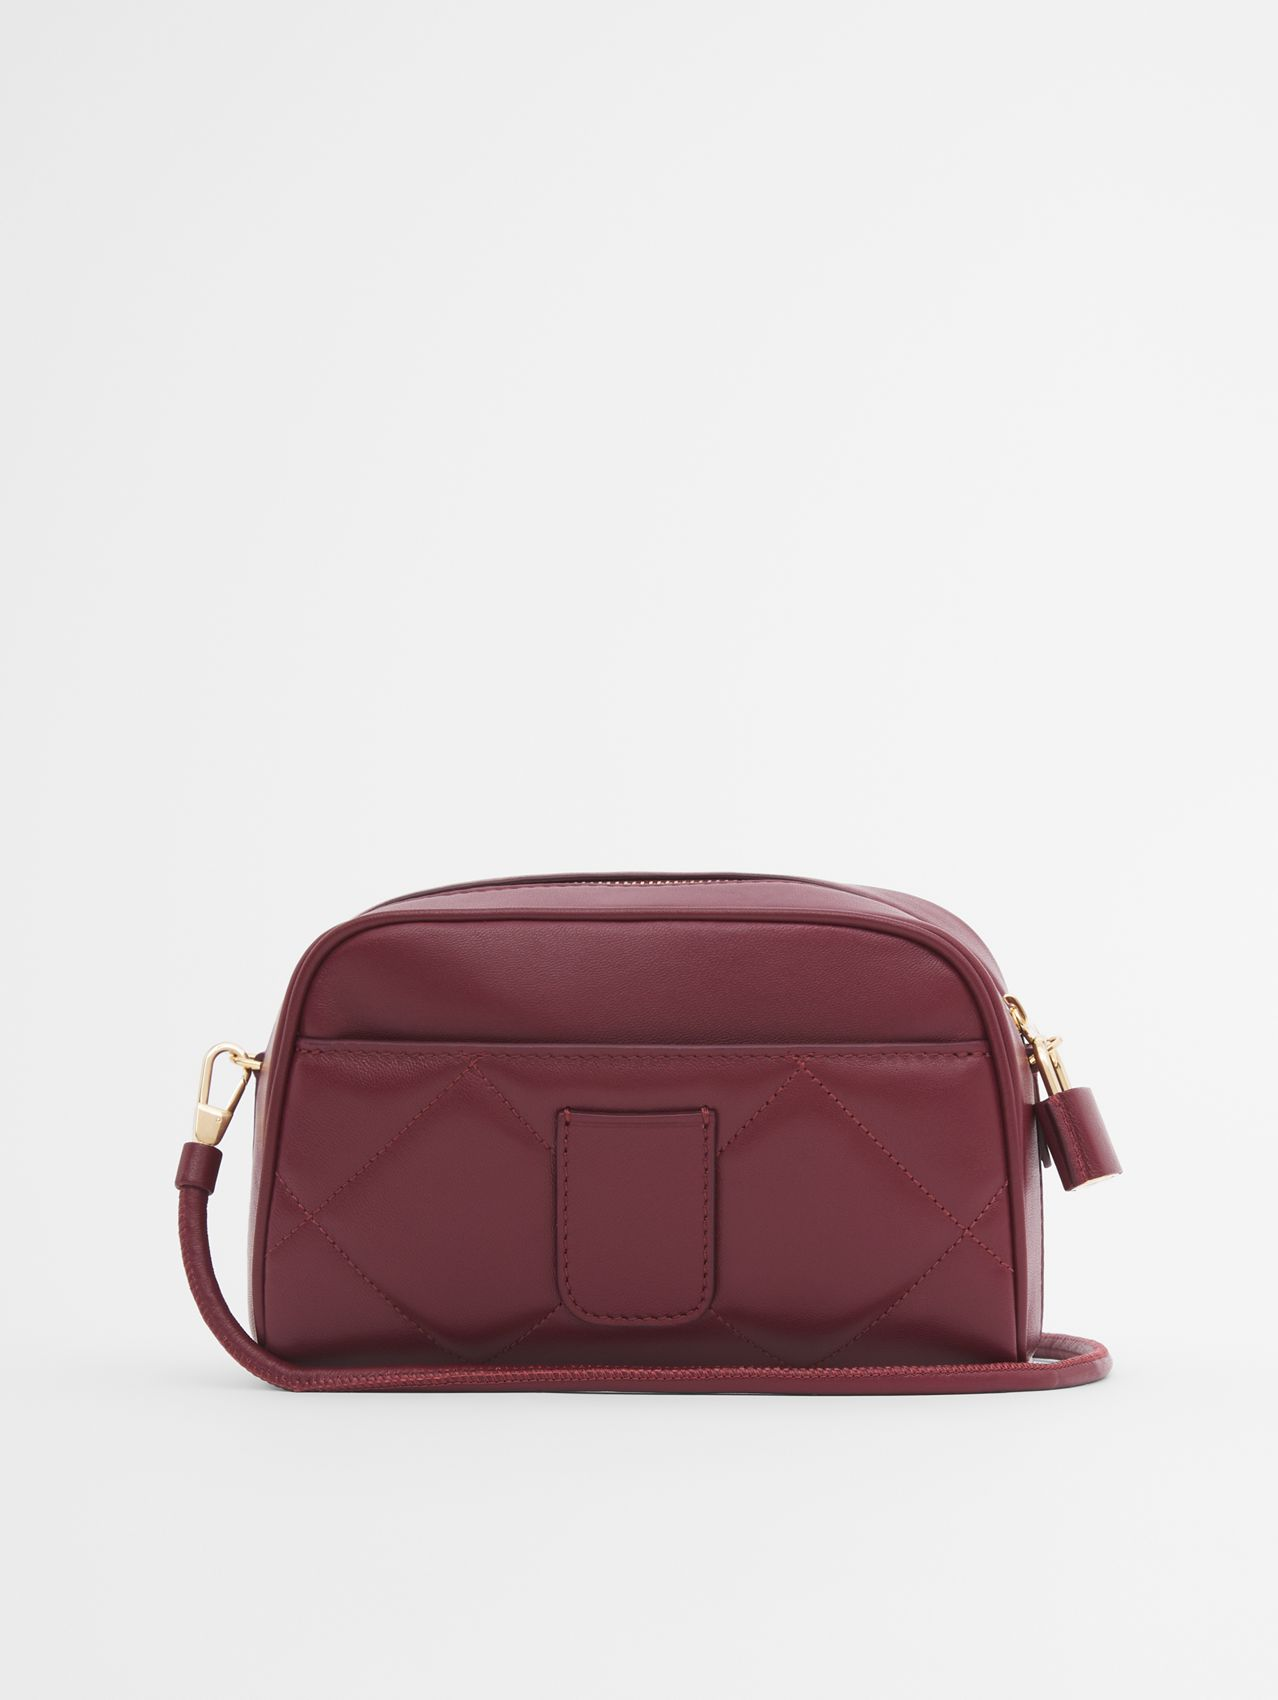 Two-tone Lambskin Half Cube Crossbody Bag in Garnet